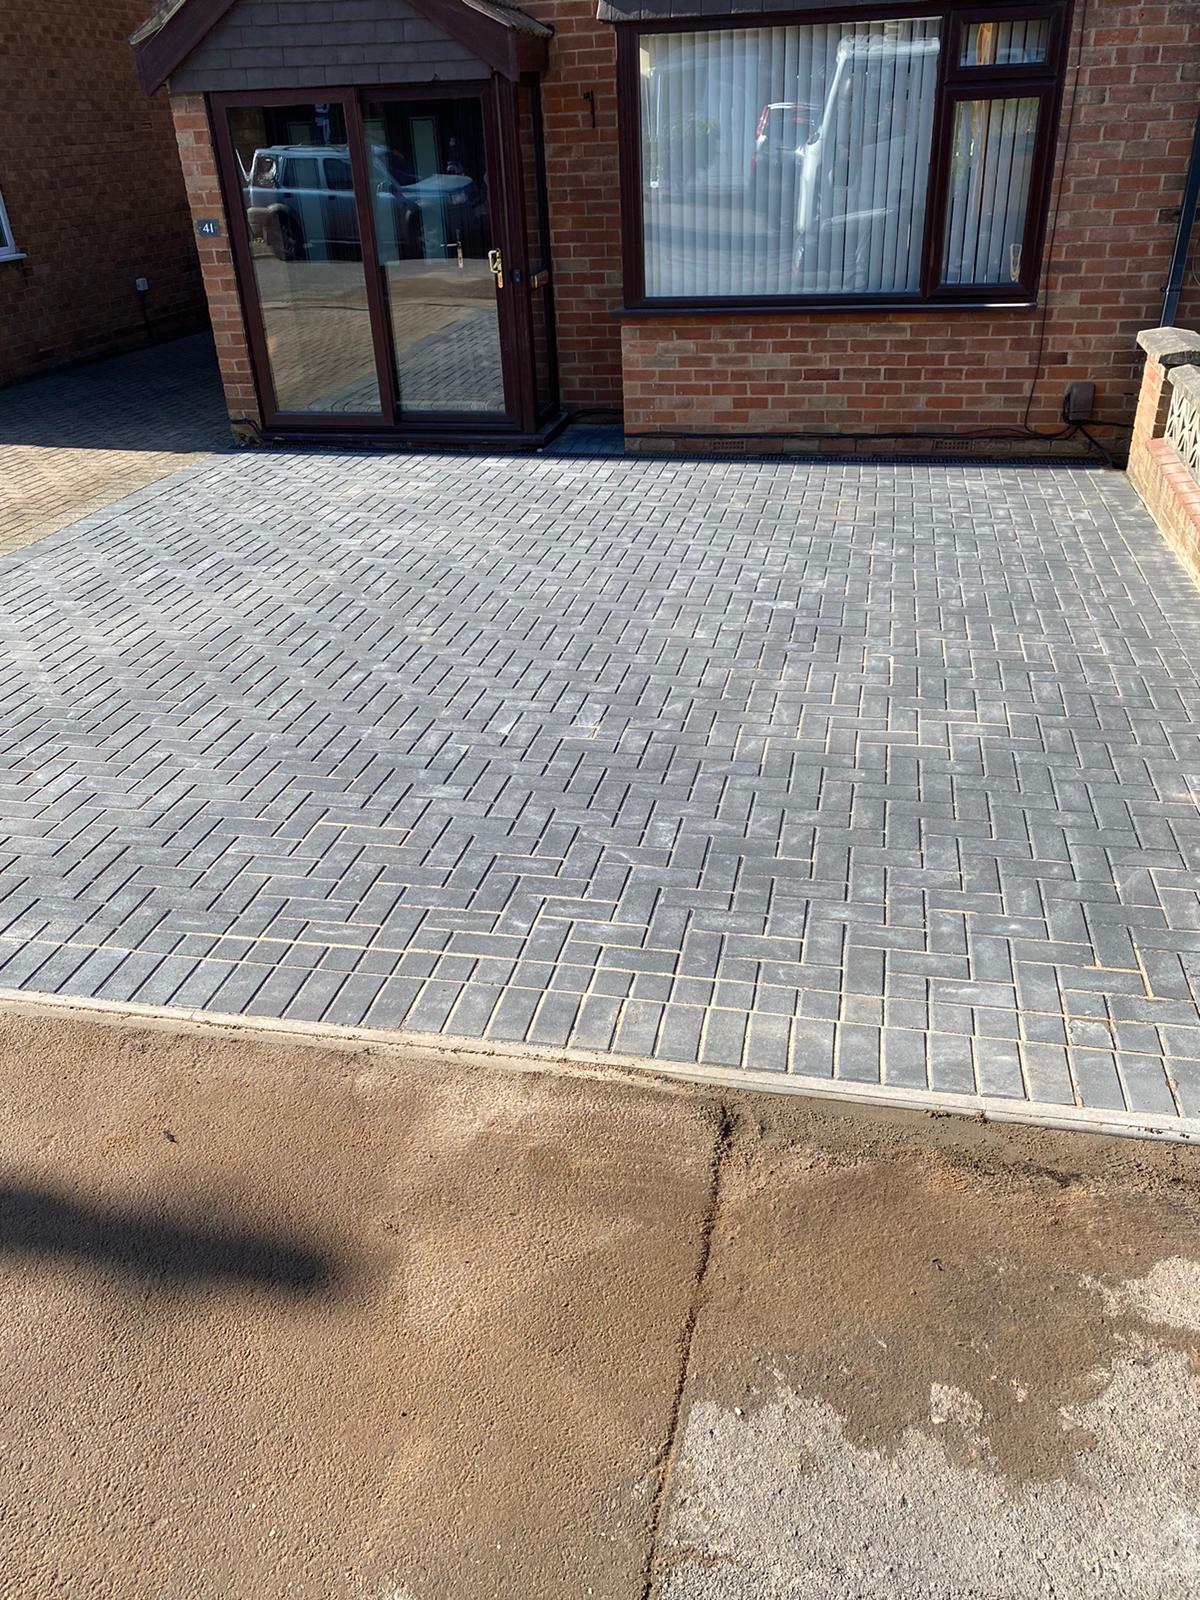 Block paving driveway completed with edge stones and dropped kerb